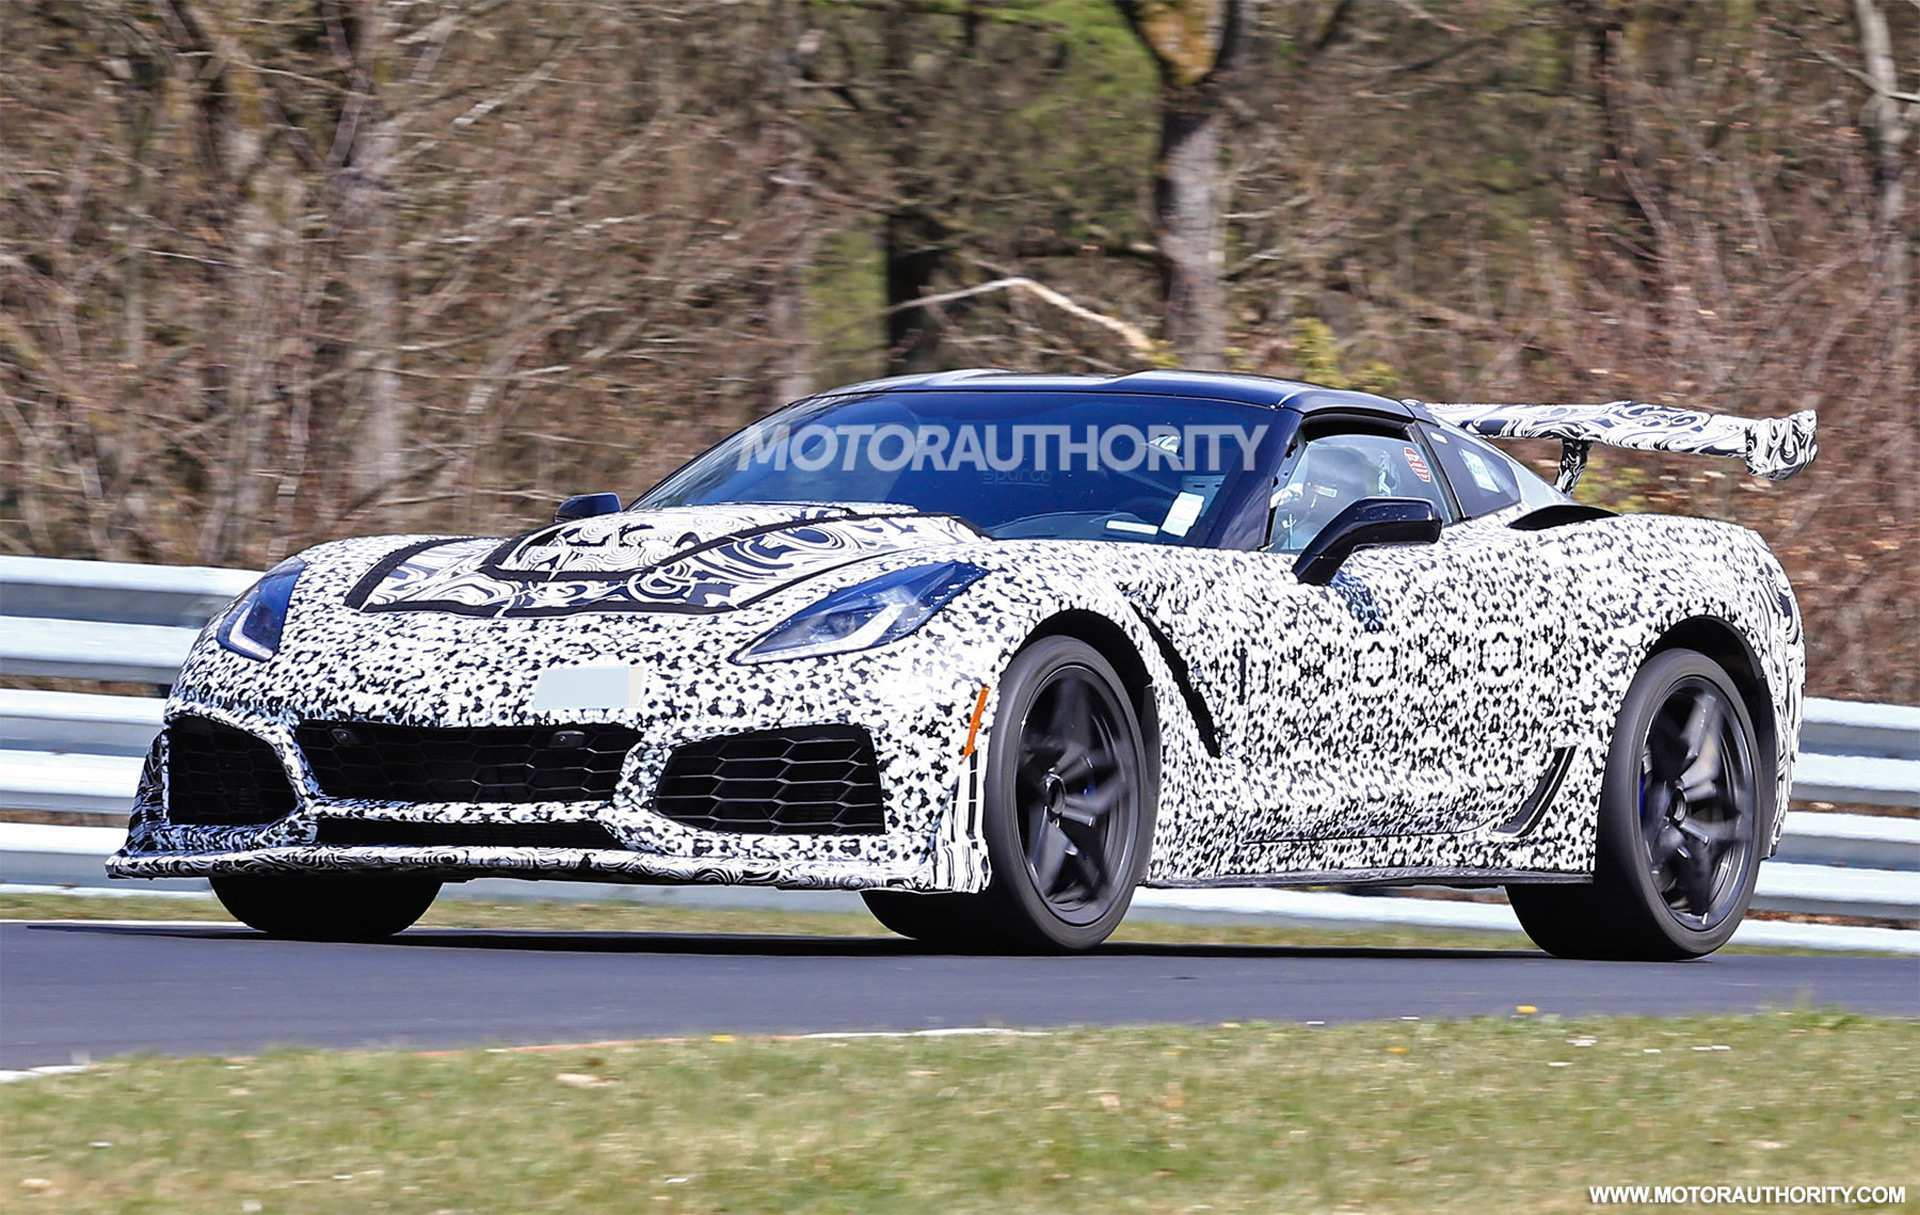 35 Great New Chevrolet Corvette Zr1 2019 Spy Shoot Images with New Chevrolet Corvette Zr1 2019 Spy Shoot